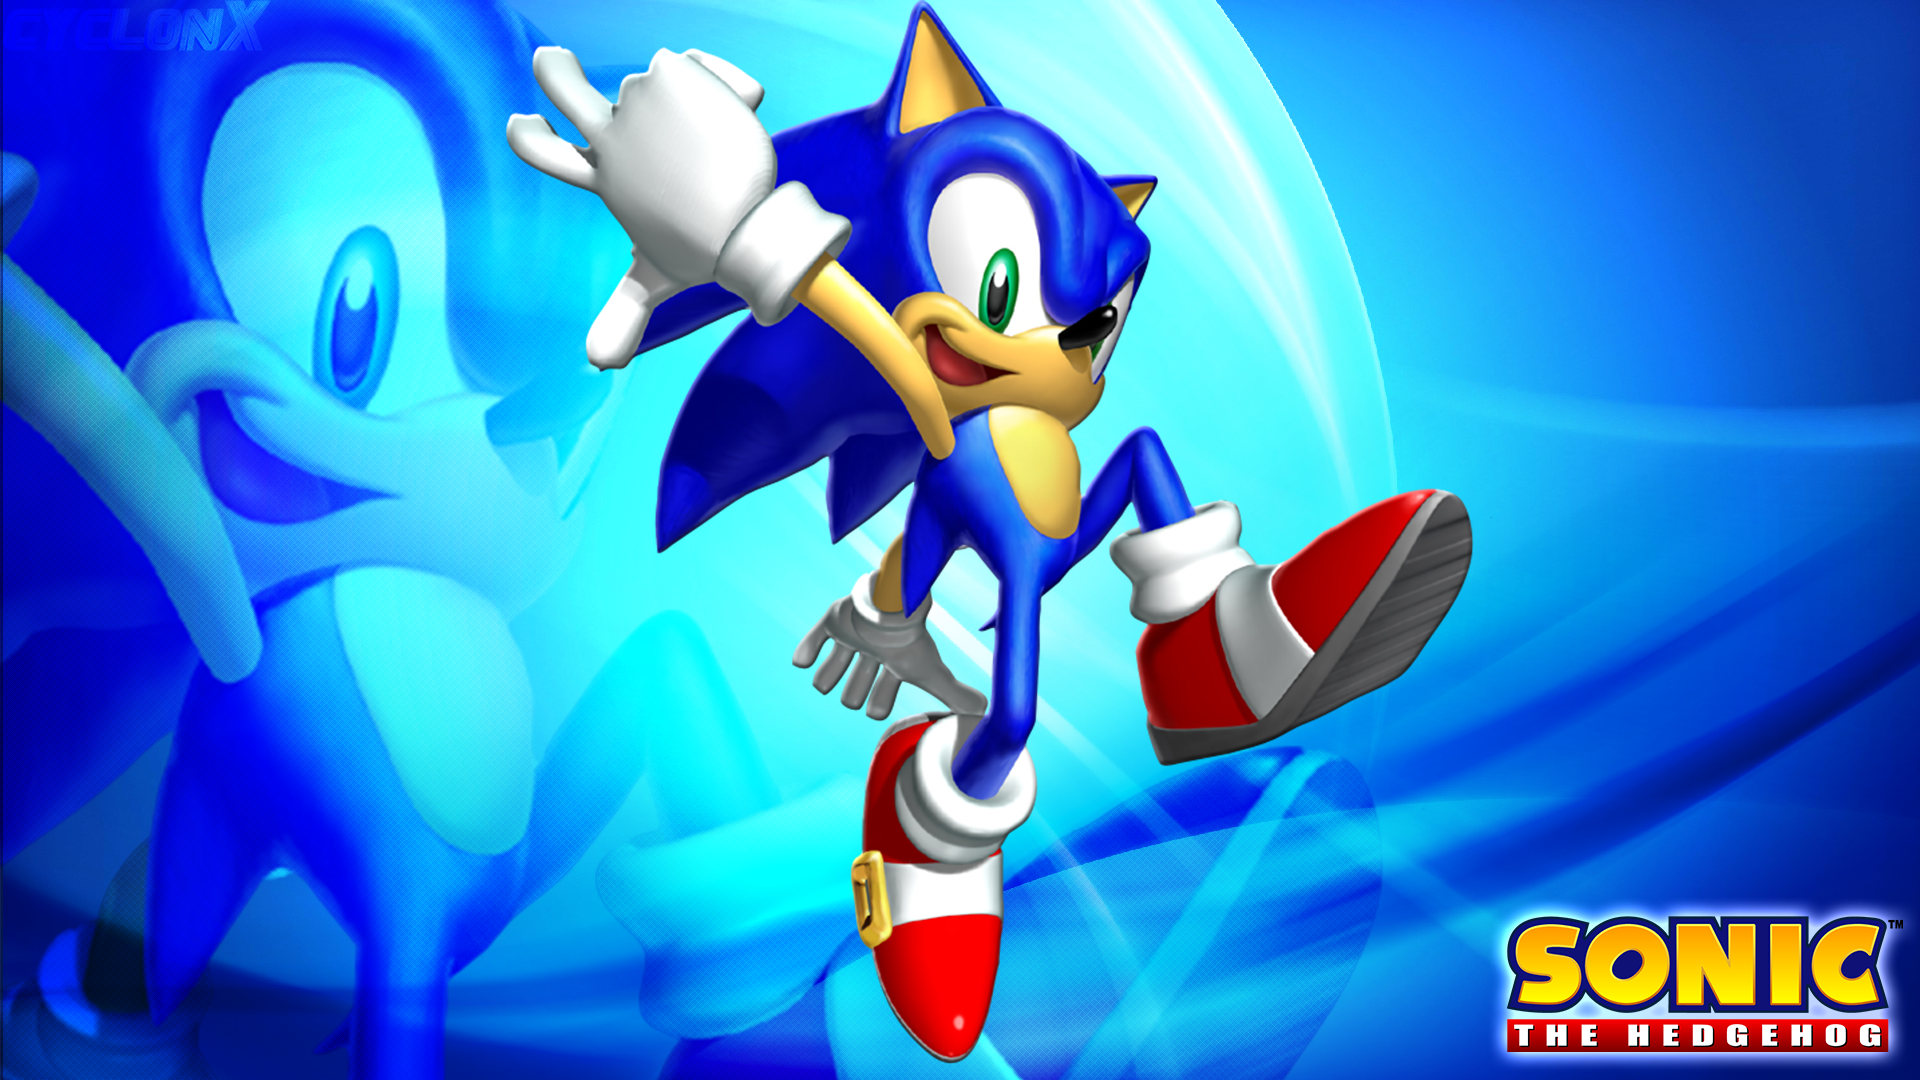 Sonic the Hedgehog Wallpaper by Sonicxhero4 on DeviantArt